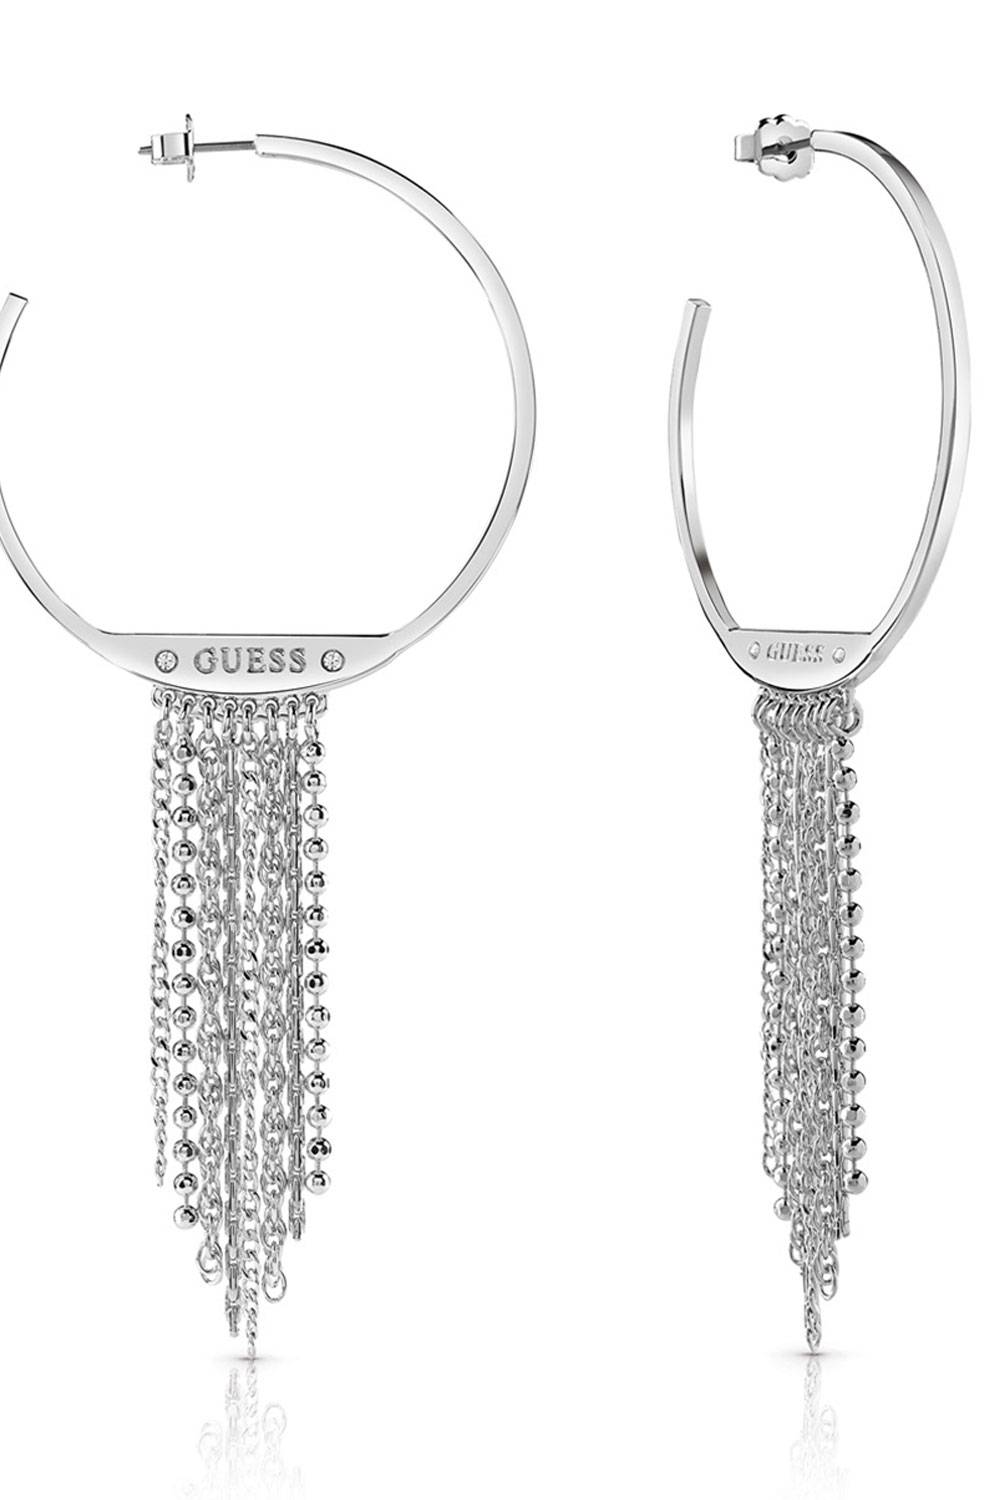 Guess - Aretes Guess Chain Waterfall UBE85052